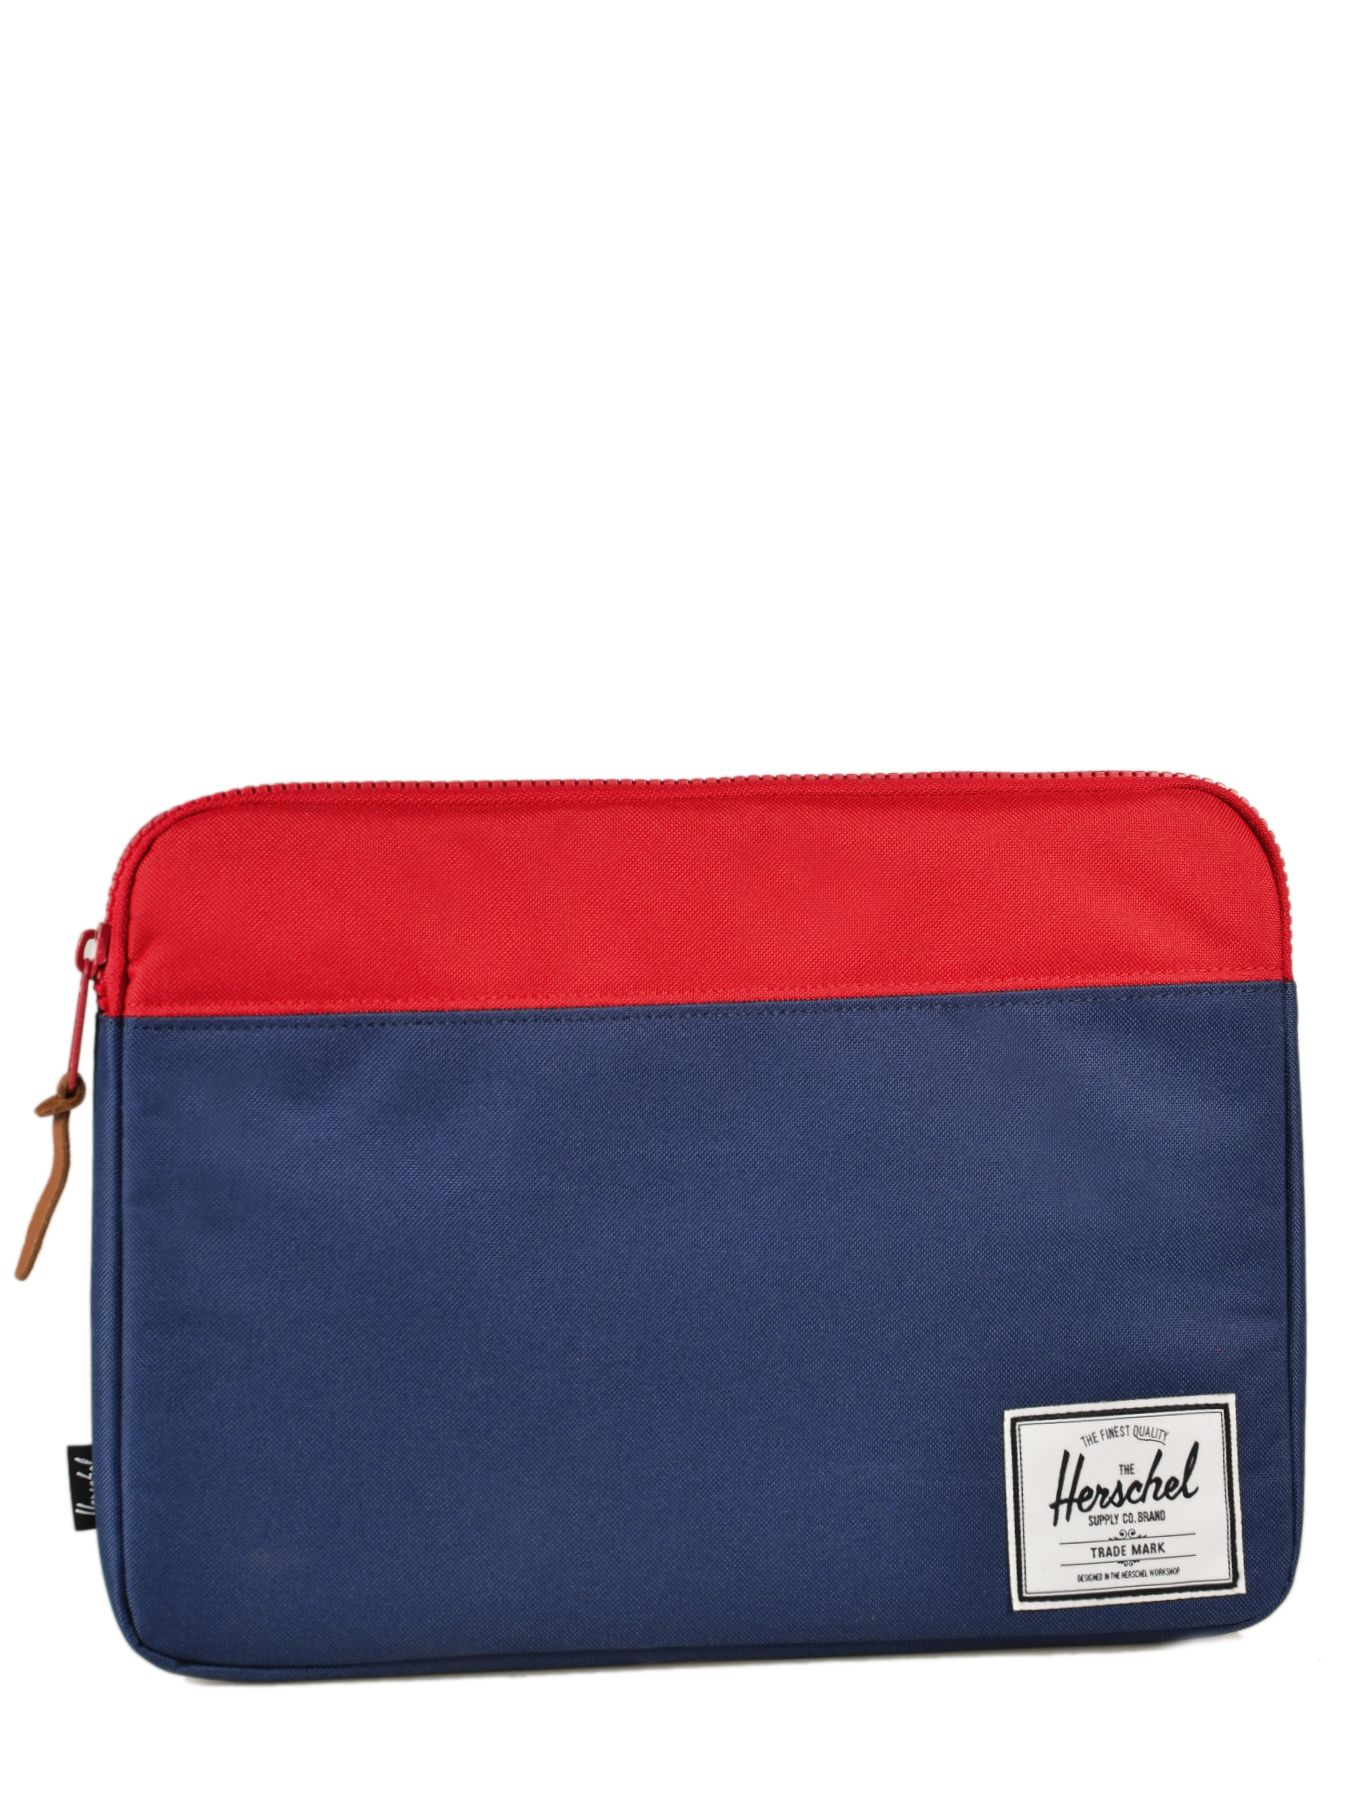 Housse ordinateur herschel navy red classics 10054 13 for Housse ordinateur